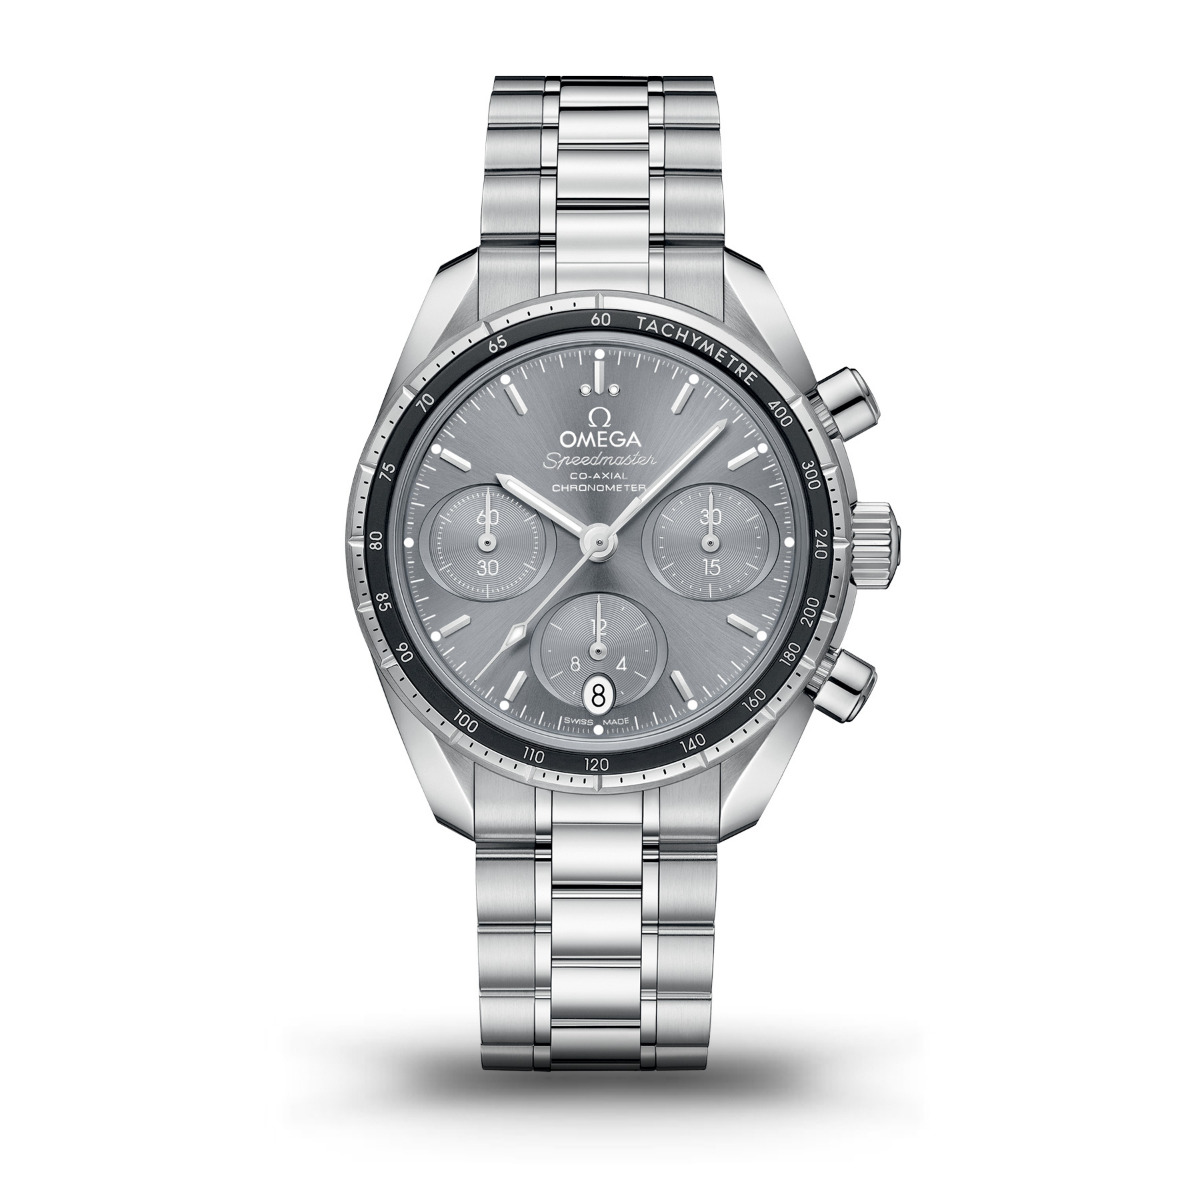 OMEGA Speedmaster Co-Axial 38mm Chronograph Watch